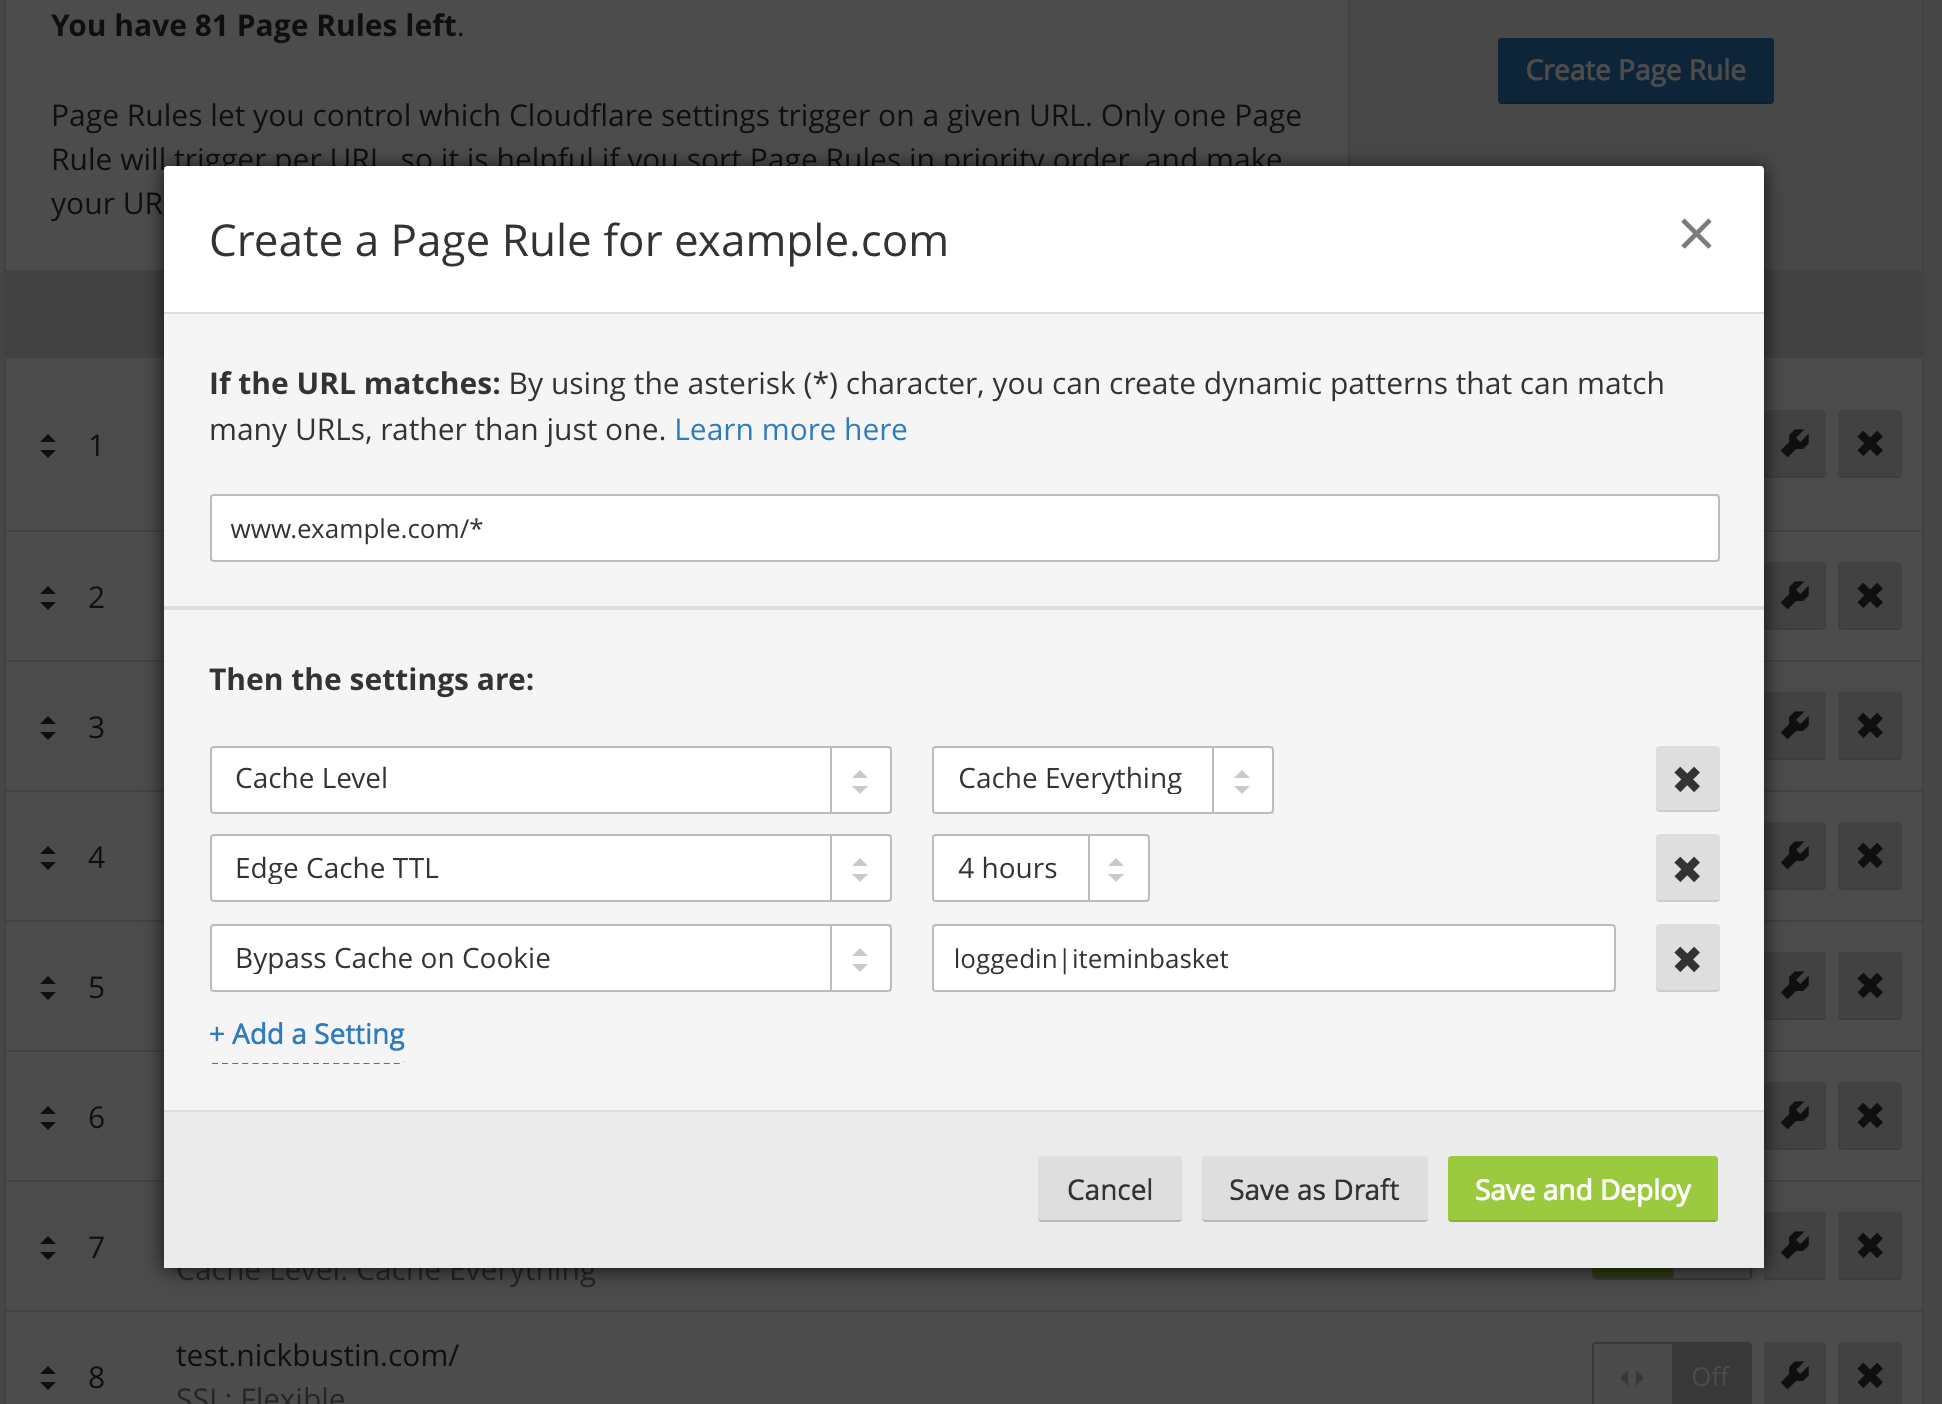 Screenshot of Cloudflare's Page Rule settings